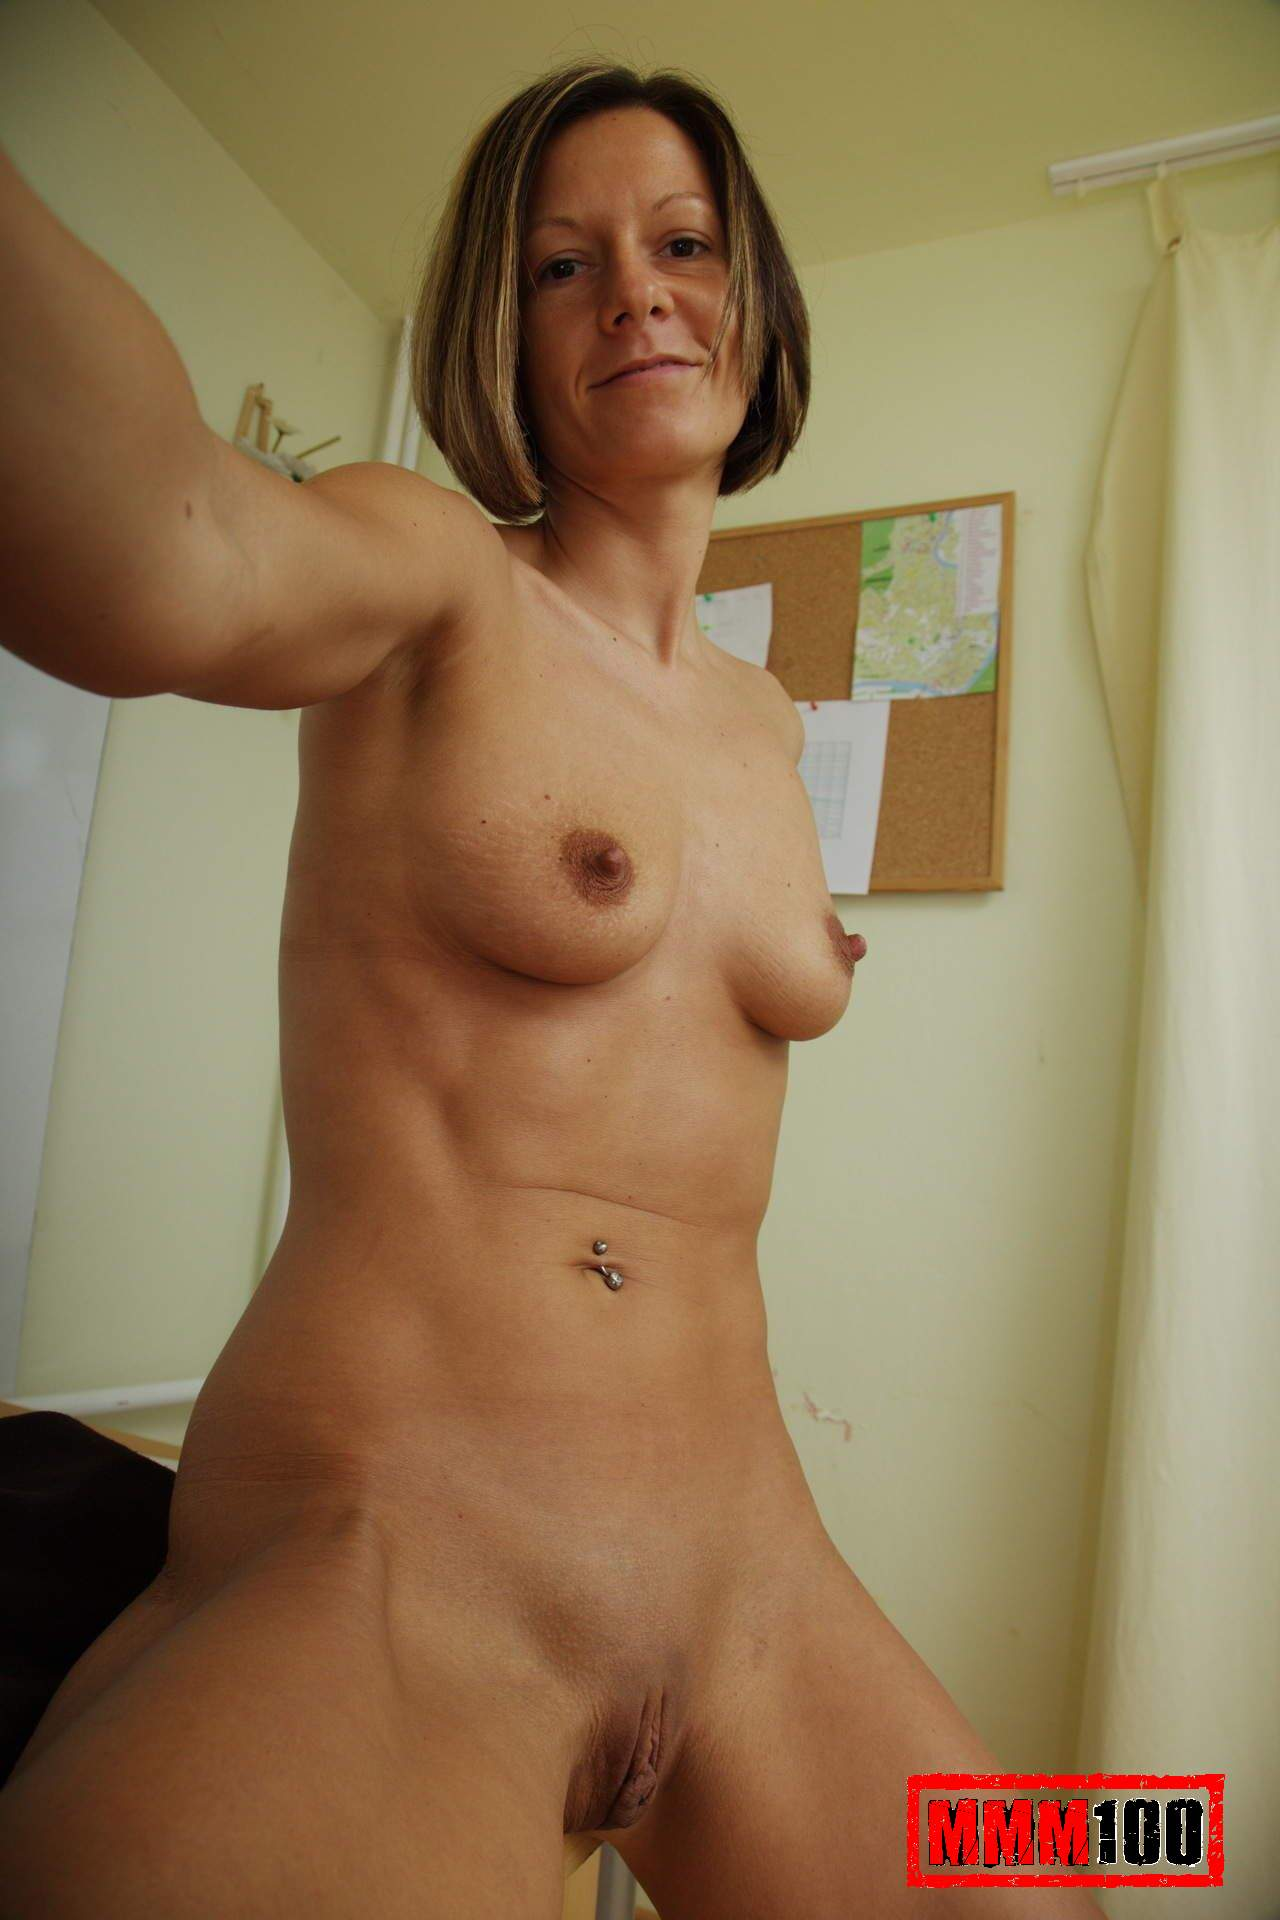 Xxx selfies mature